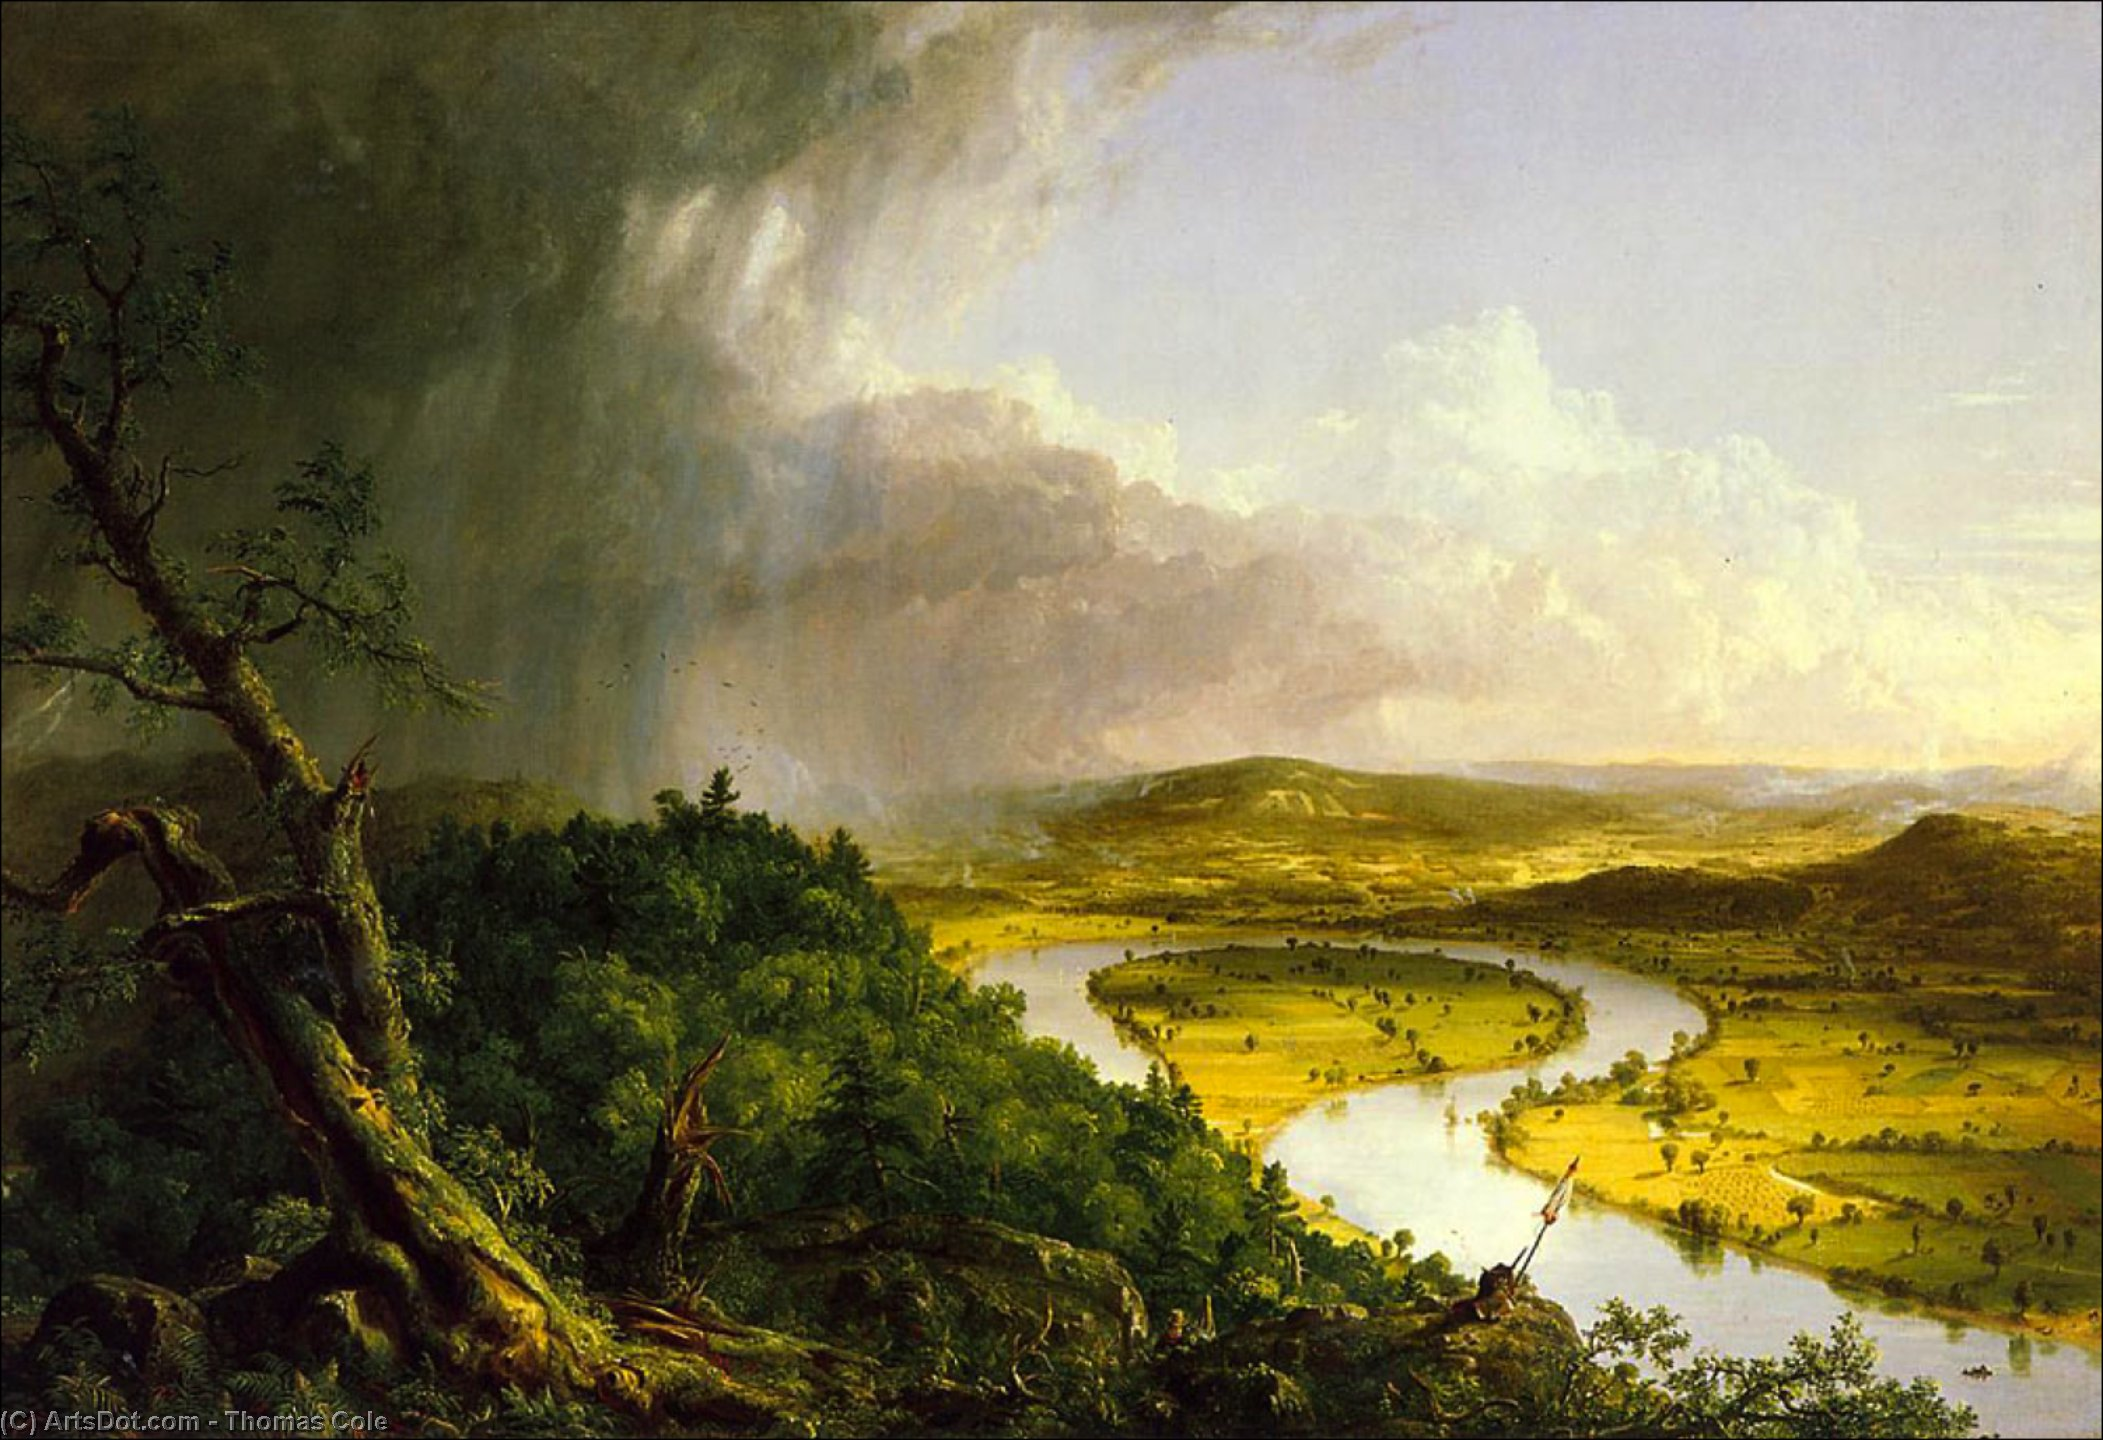 Die Oxbow, öl von Thomas Cole (1801-1848, United Kingdom)